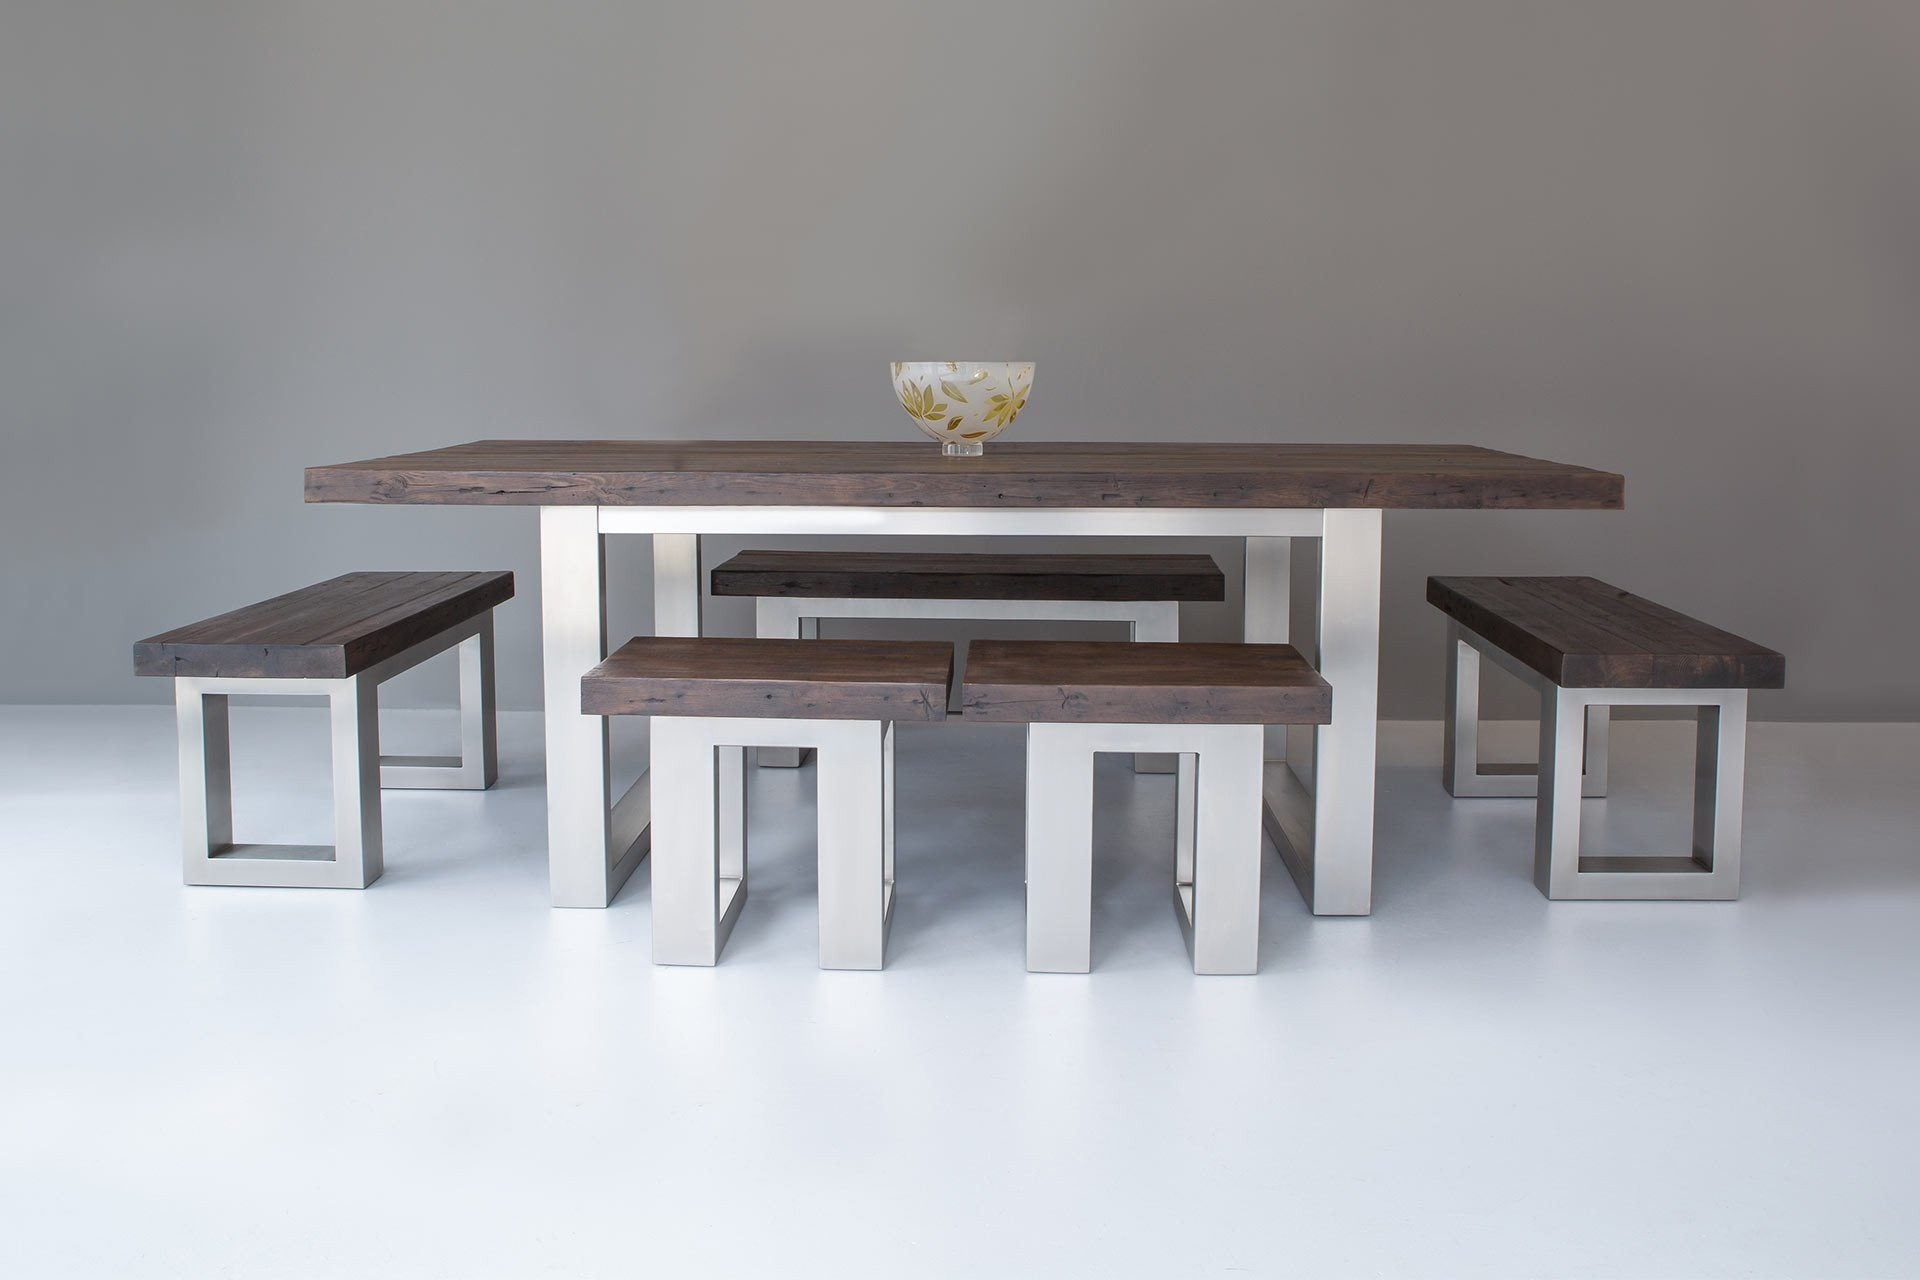 Classic Stools With 223cm Long Overhang Table & End Benches (Sold Separately)